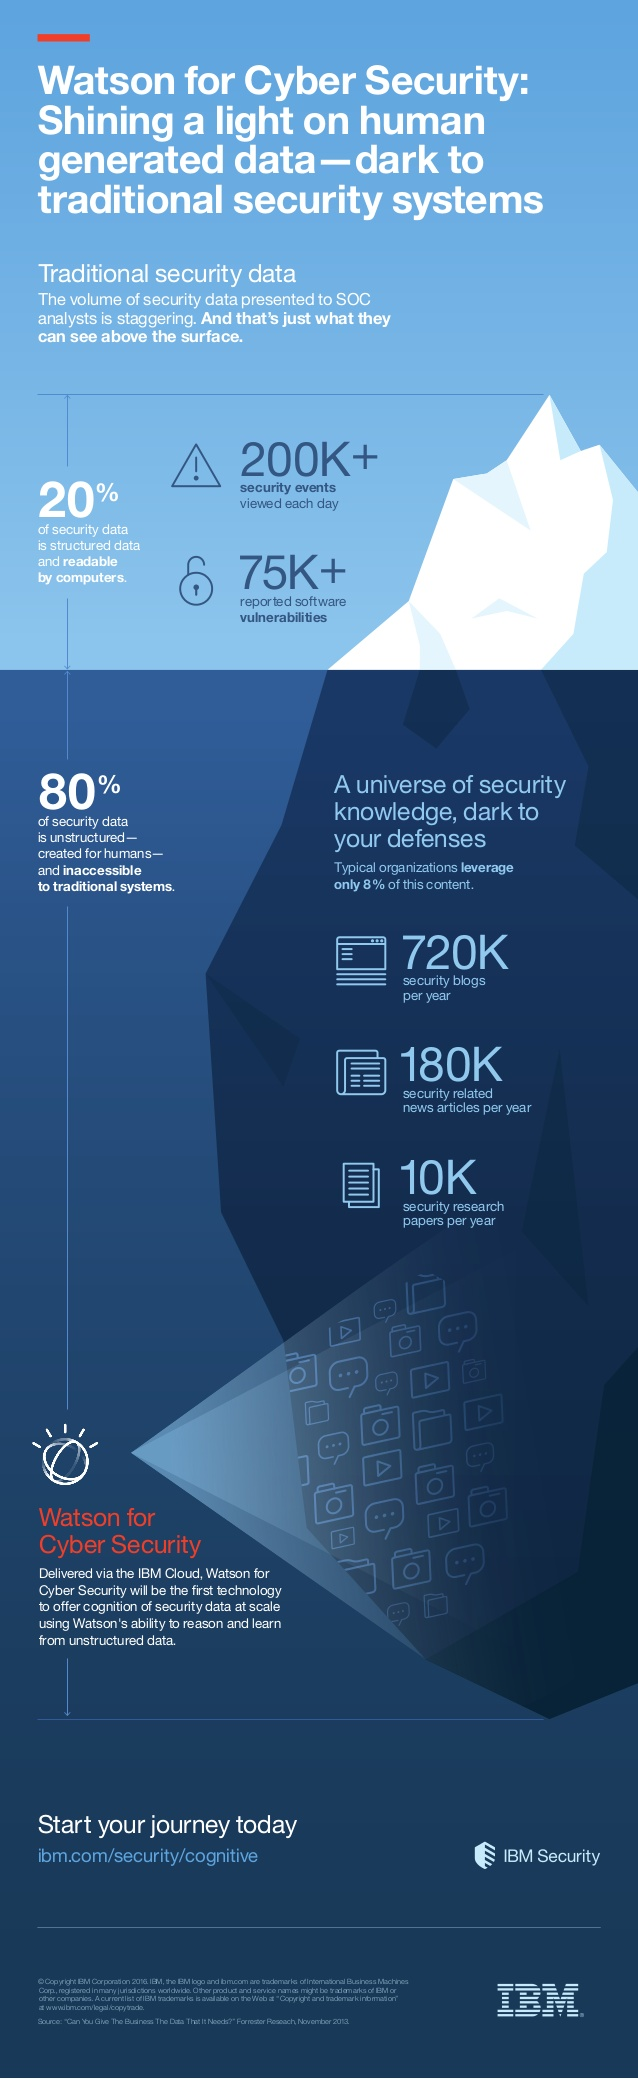 infographic-watson-for-cyber-security-1-638